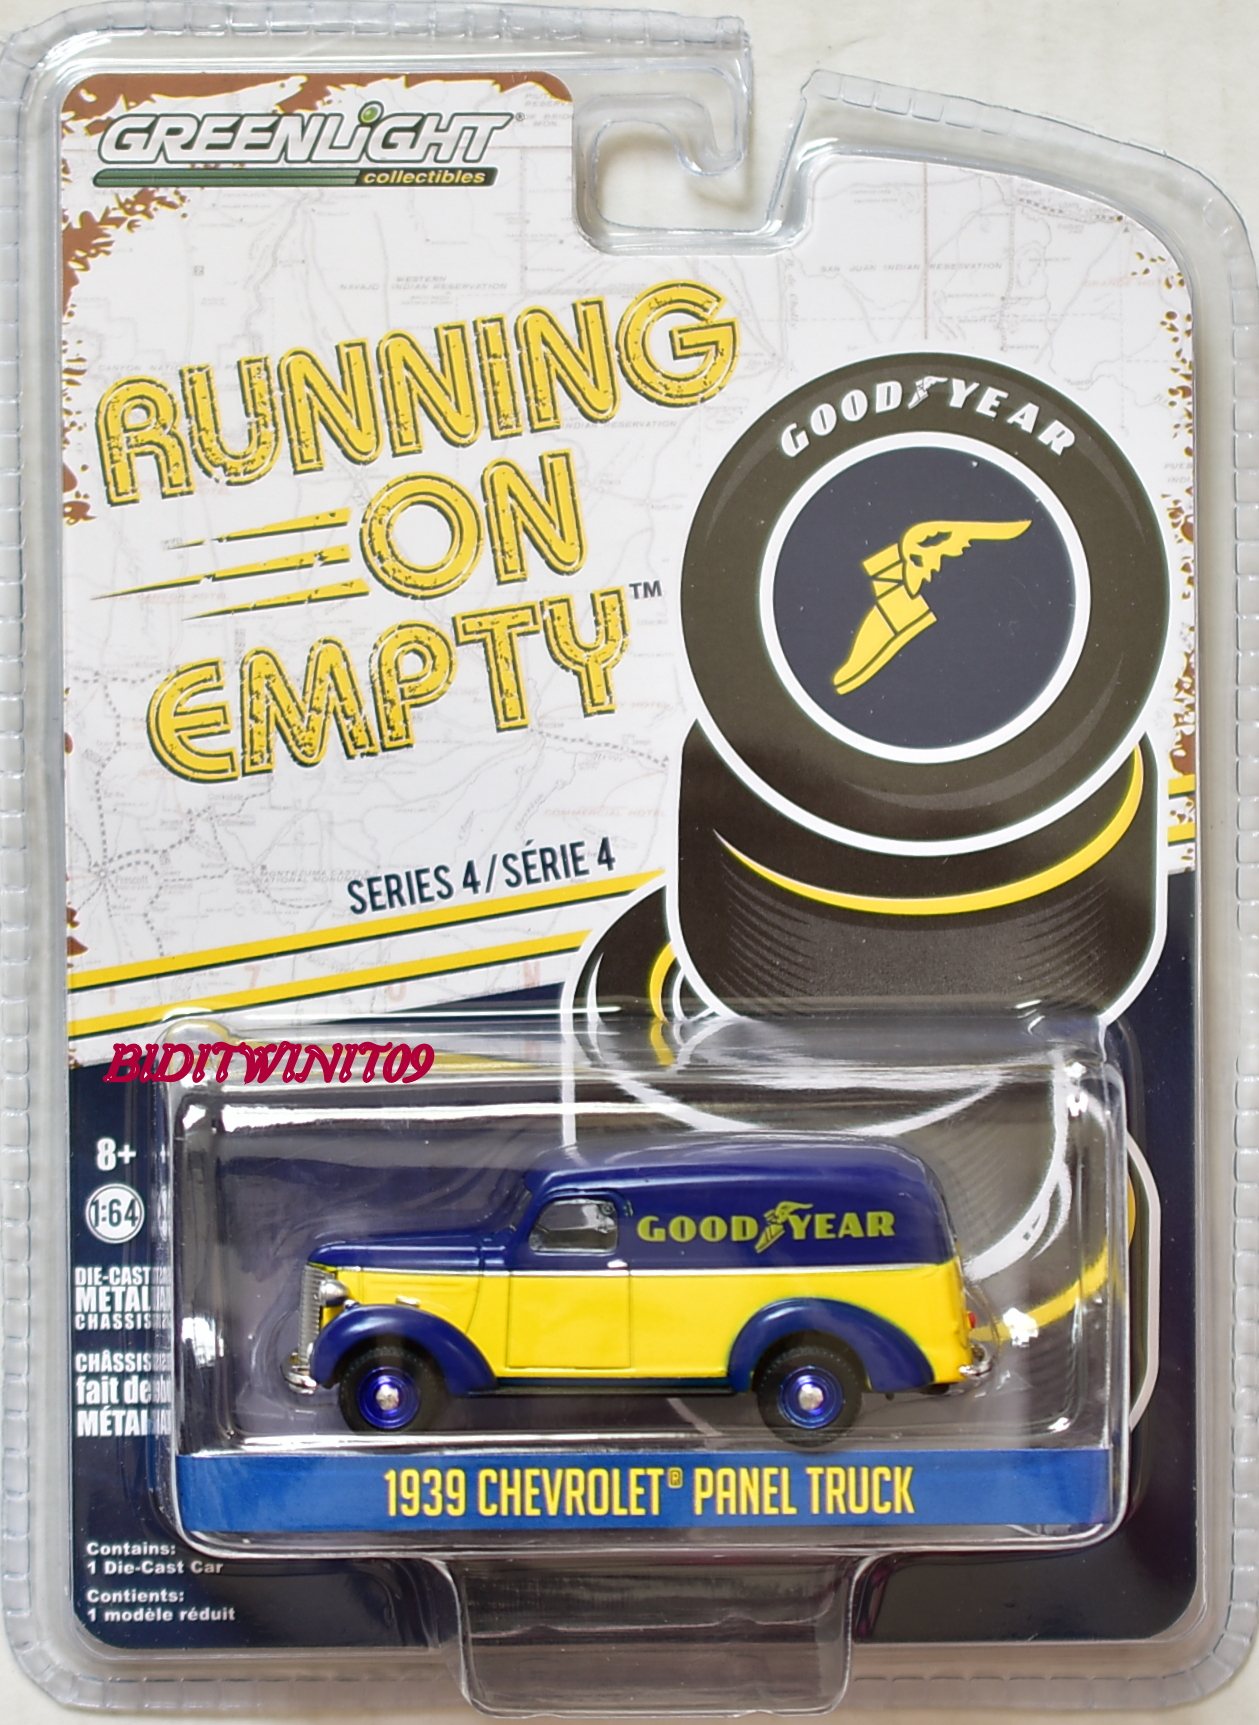 GREENLIGHT RUNNING ON EMPTY SERIES 4 1939 CHEVROLET PANEL TRUCK E+